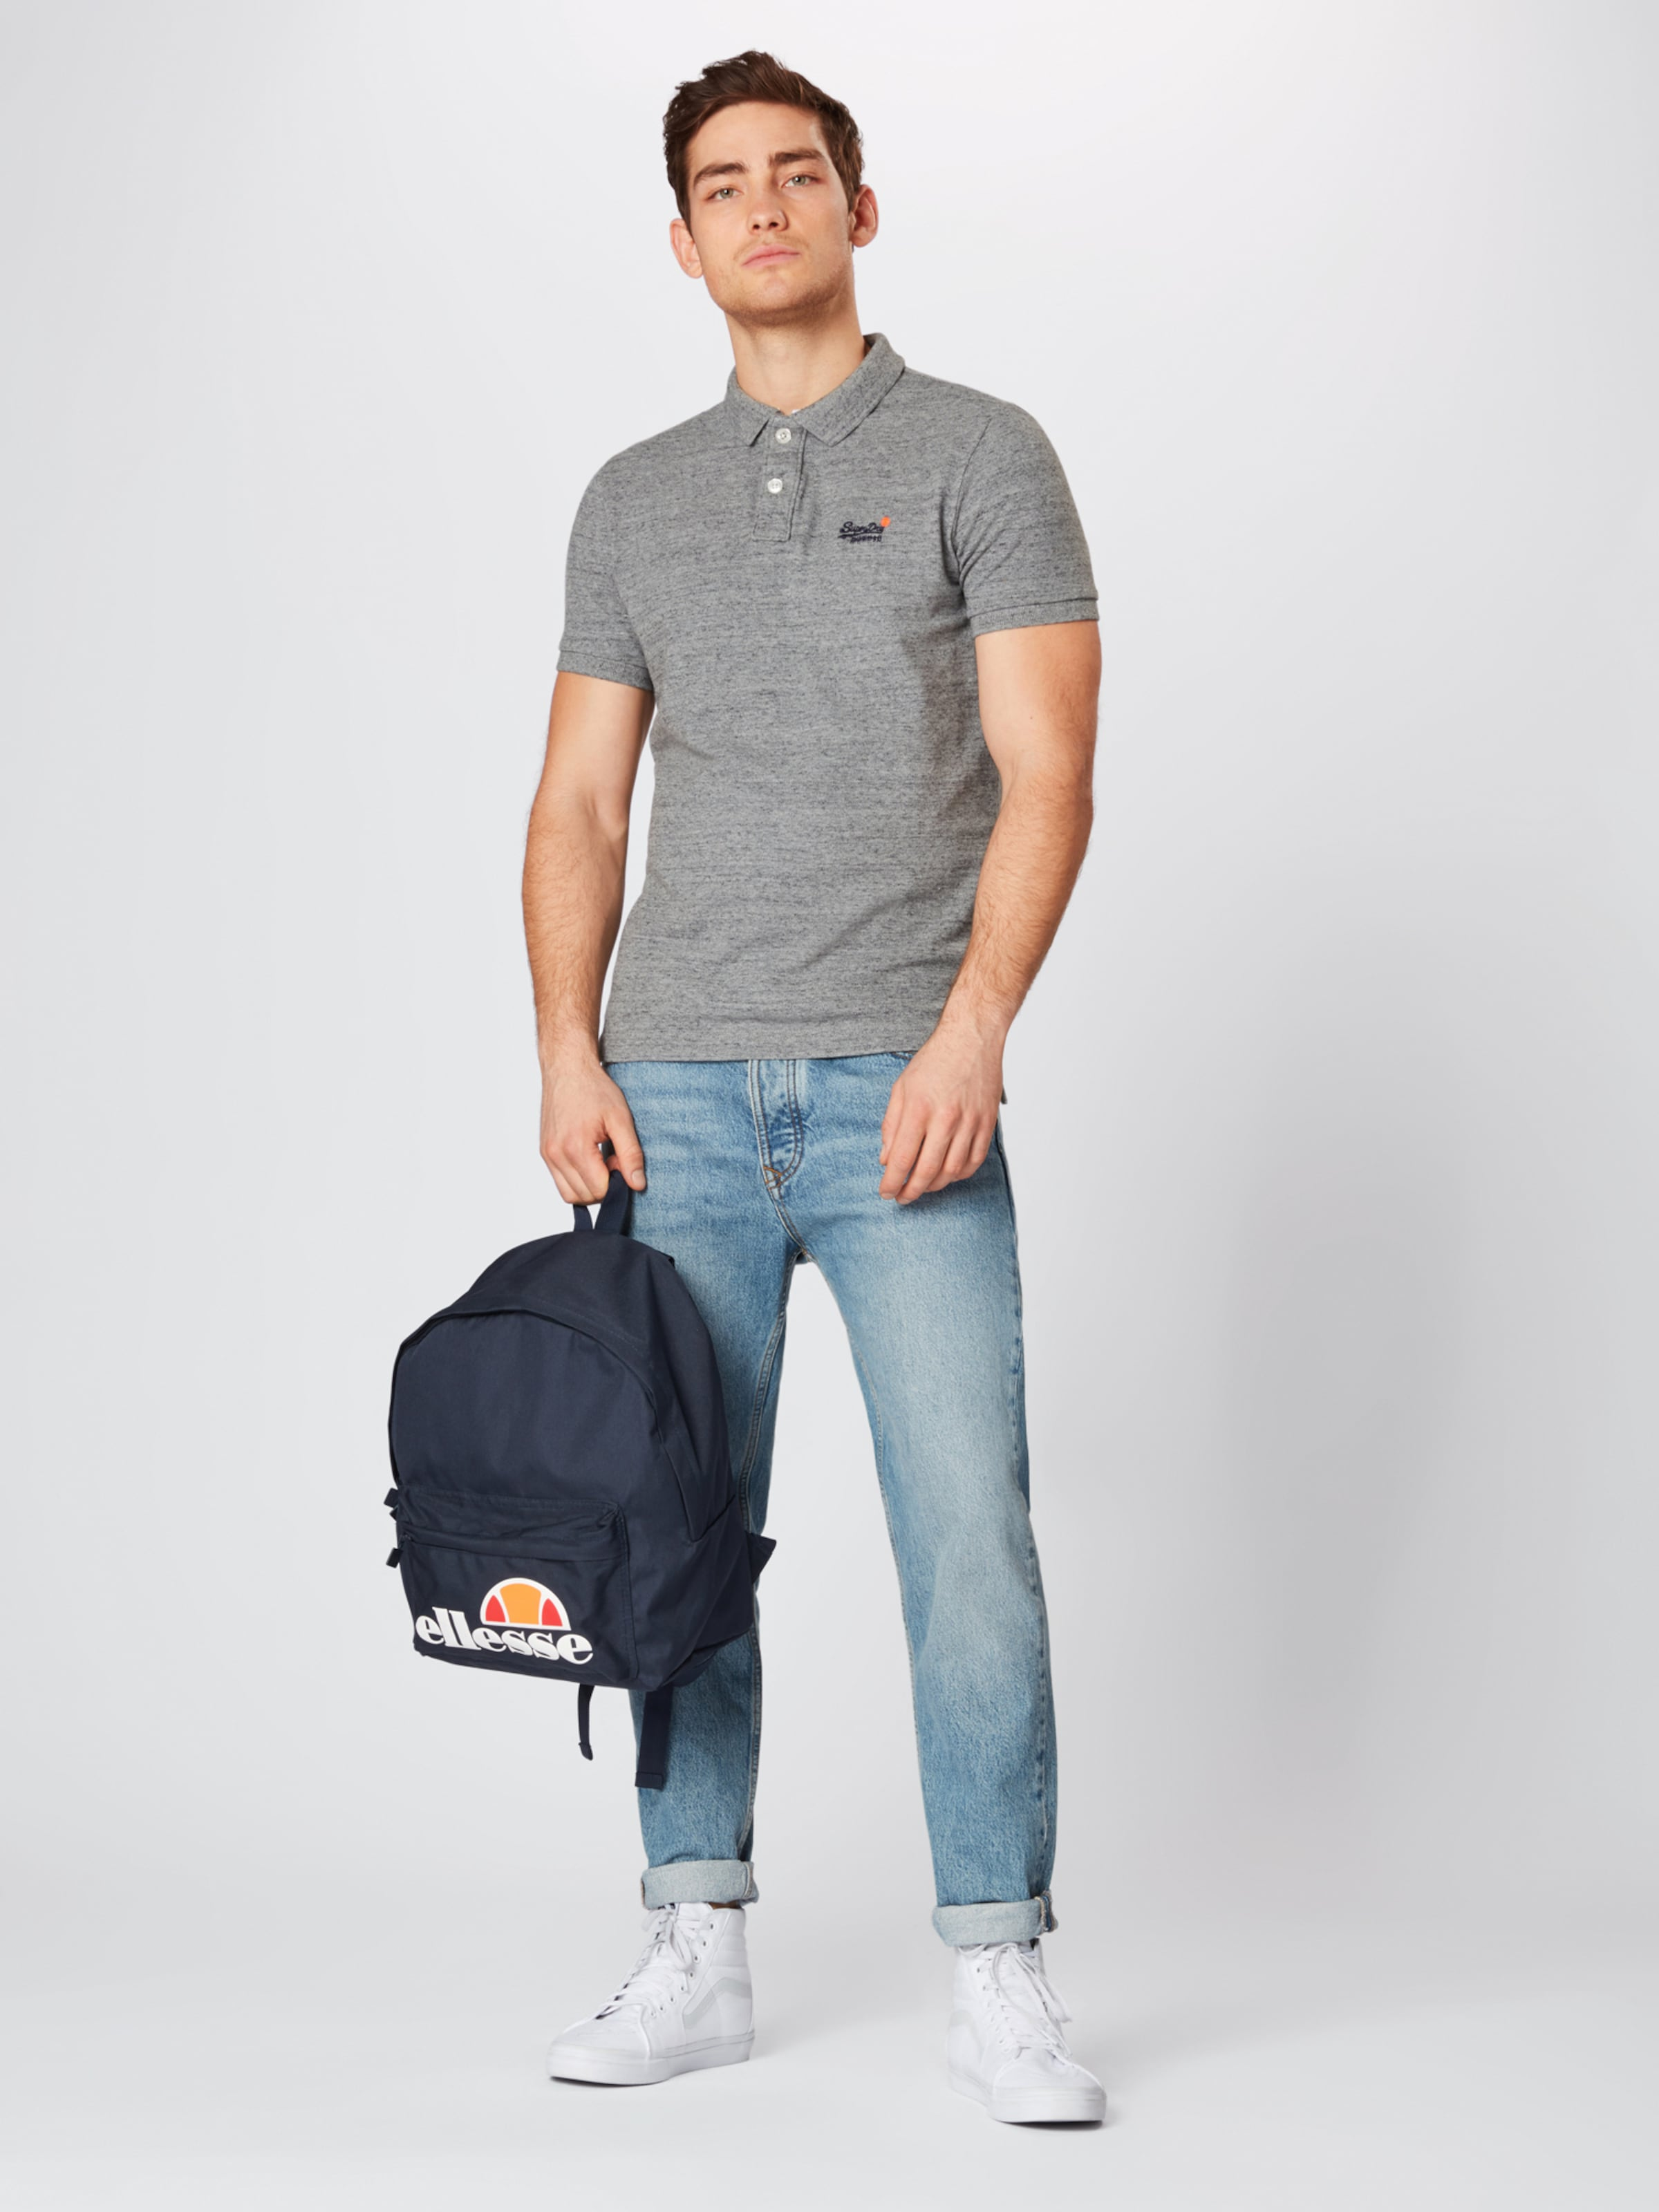 S In Pique Polo' s Superdry 'classic Shirt Grau hdsQxrCBt